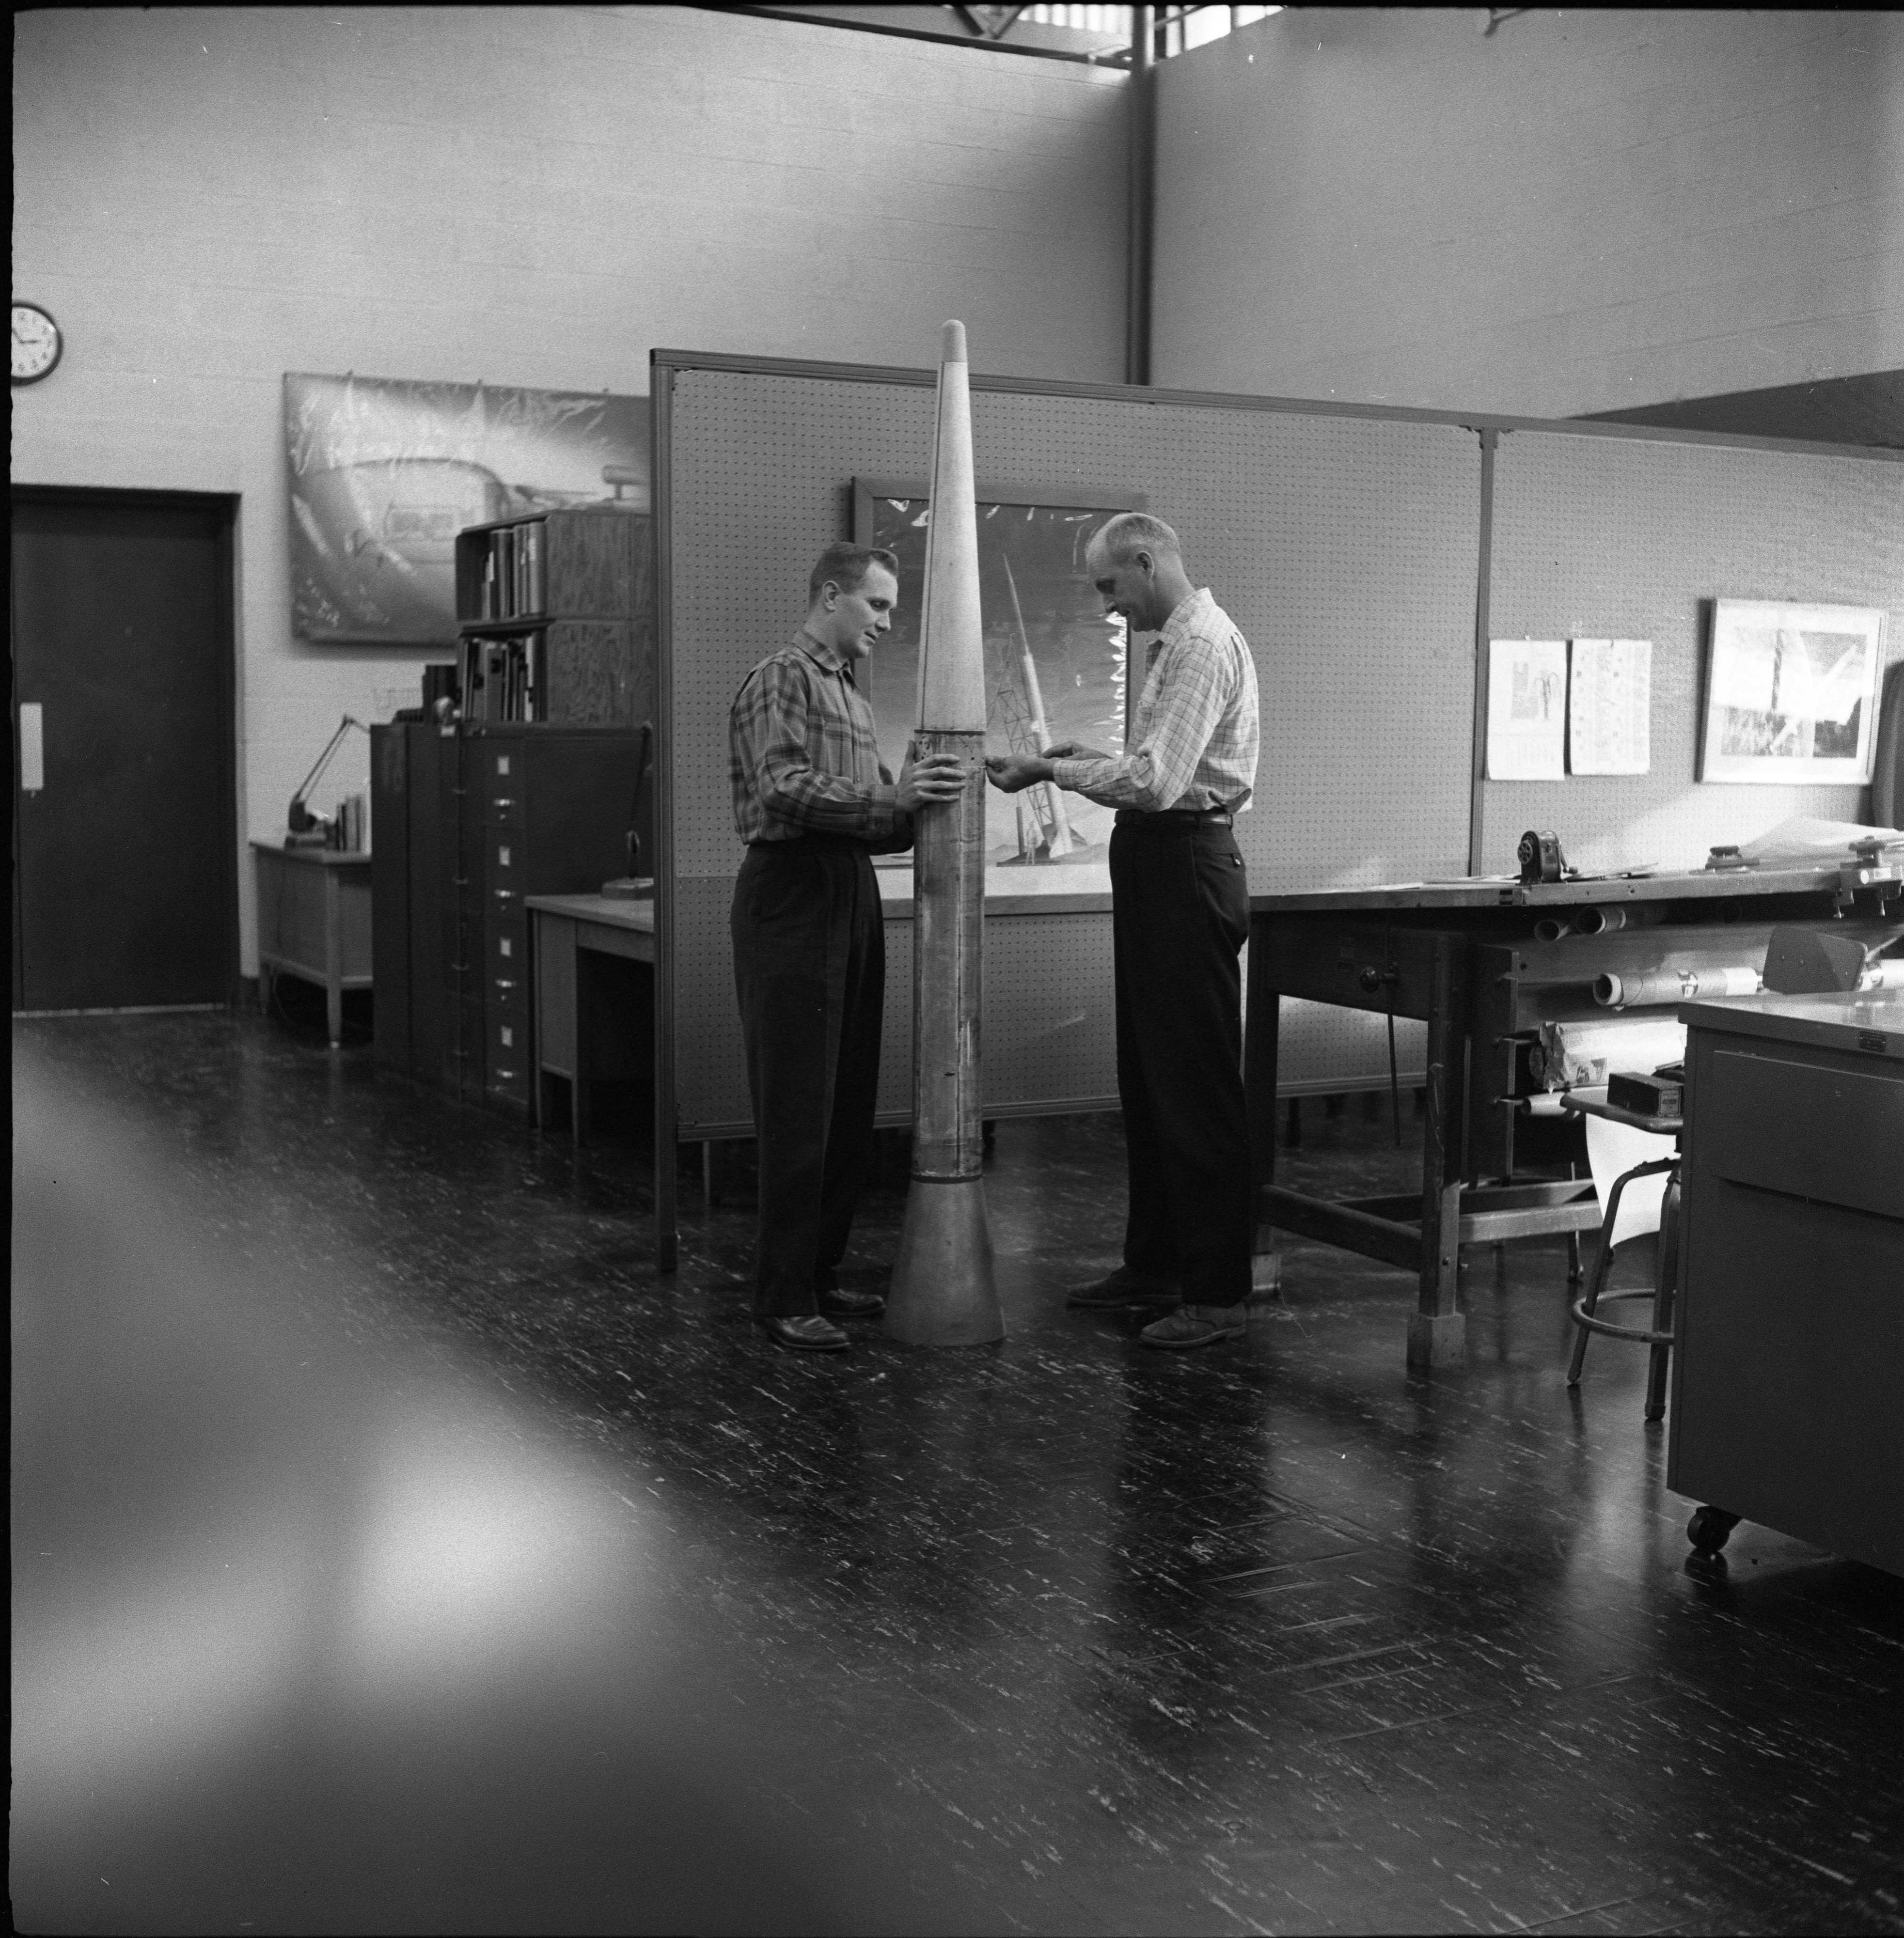 Frederick F. Fischbach & William H. Hansen Work On A Rocket At The High Altitude Laboratory, December 7, 1959 image